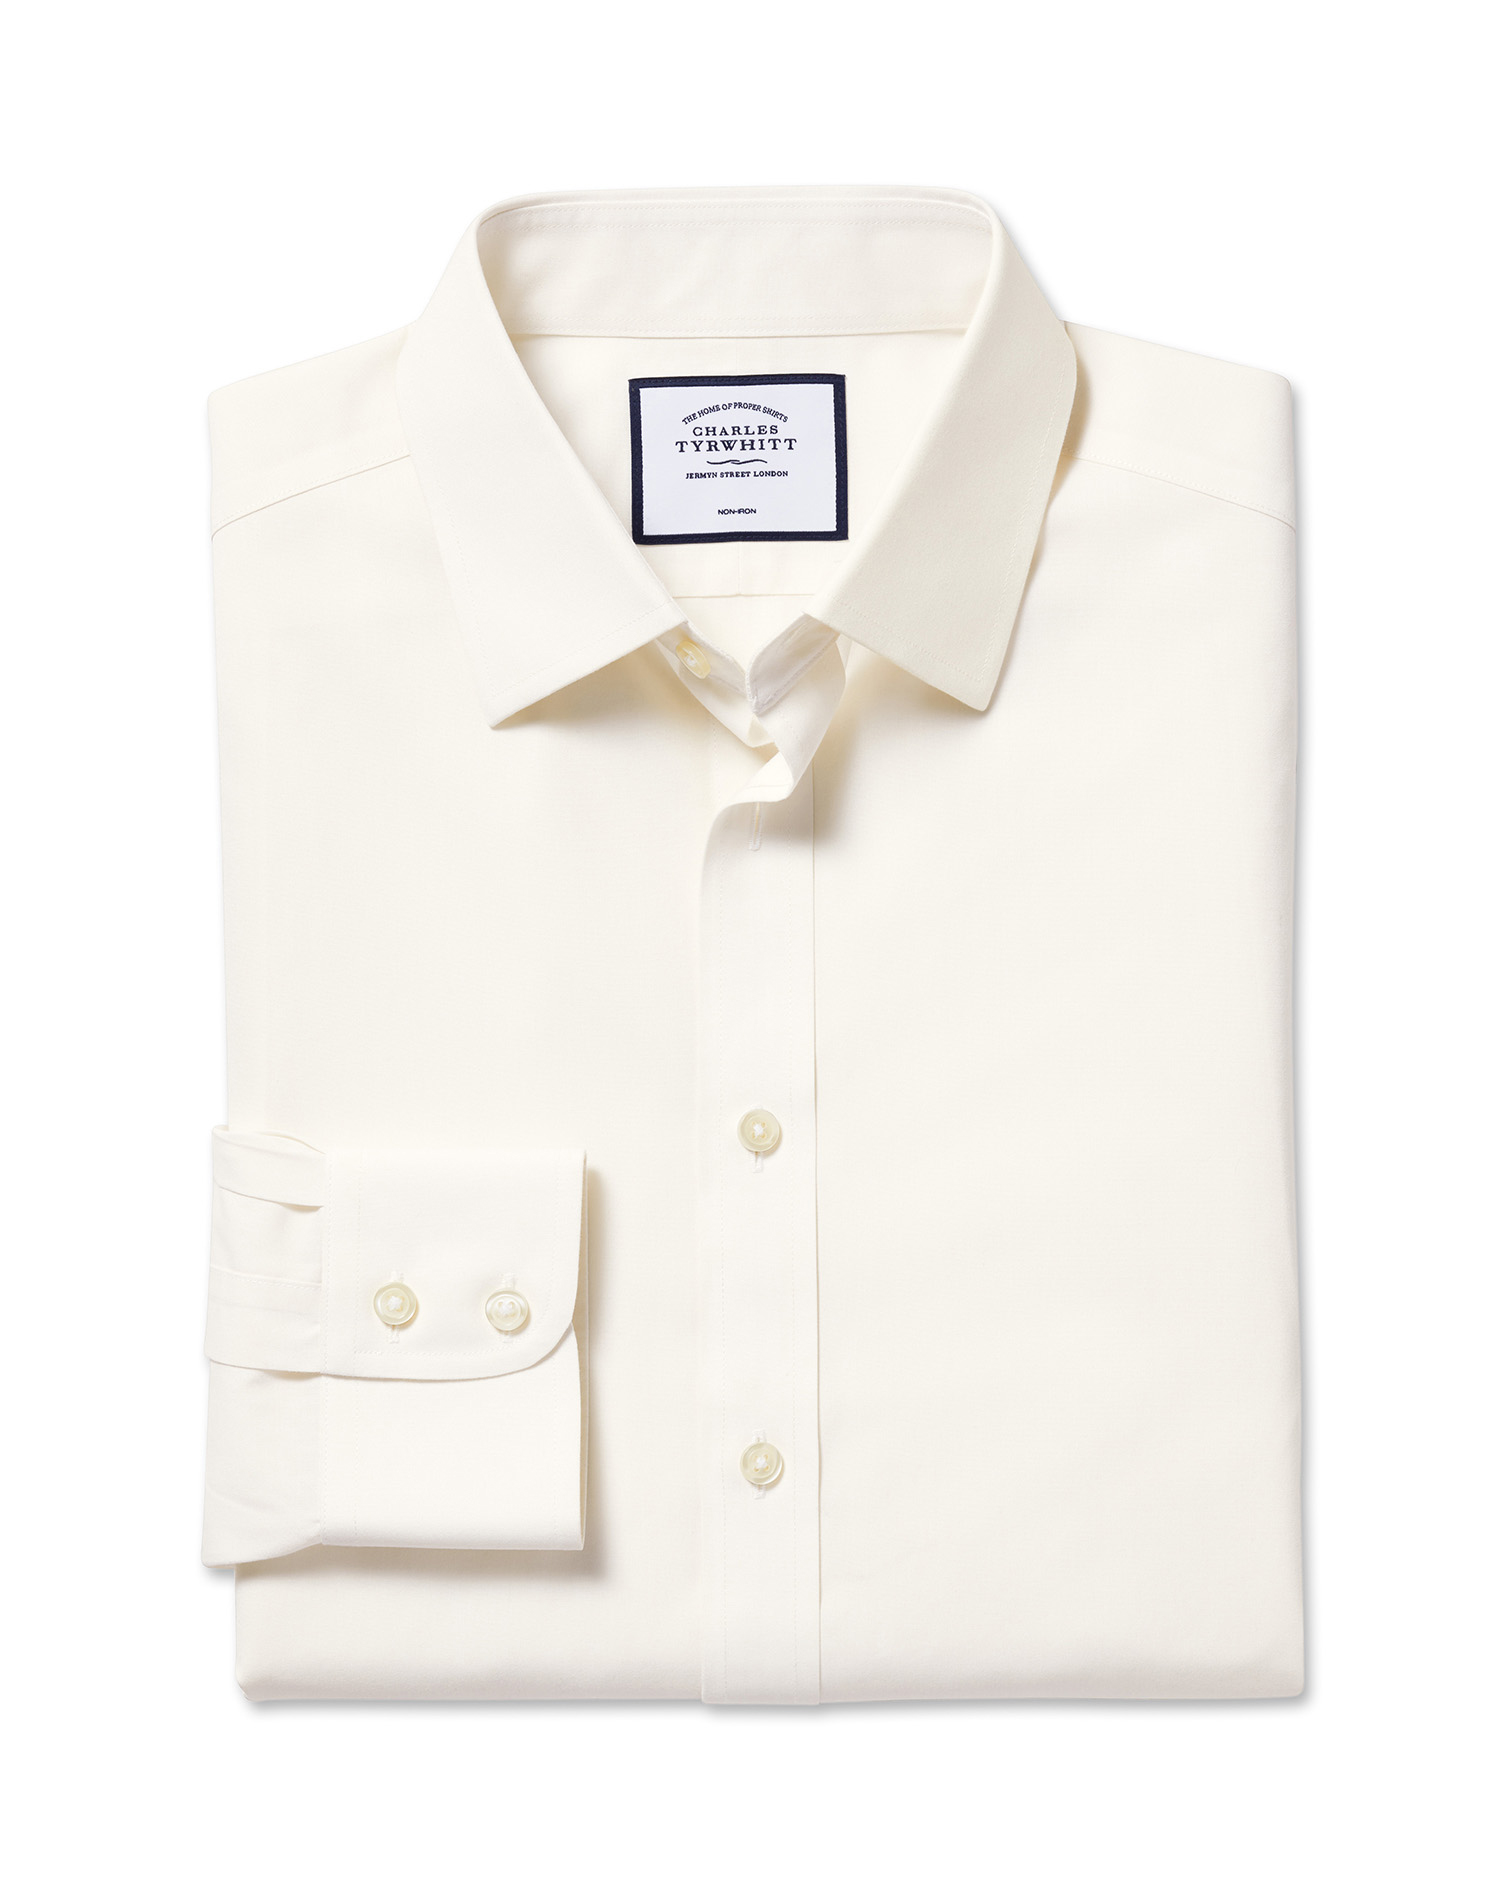 Classic Fit Non-Iron Poplin Cream Cotton Formal Shirt Single Cuff Size 16/36 by Charles Tyrwhitt